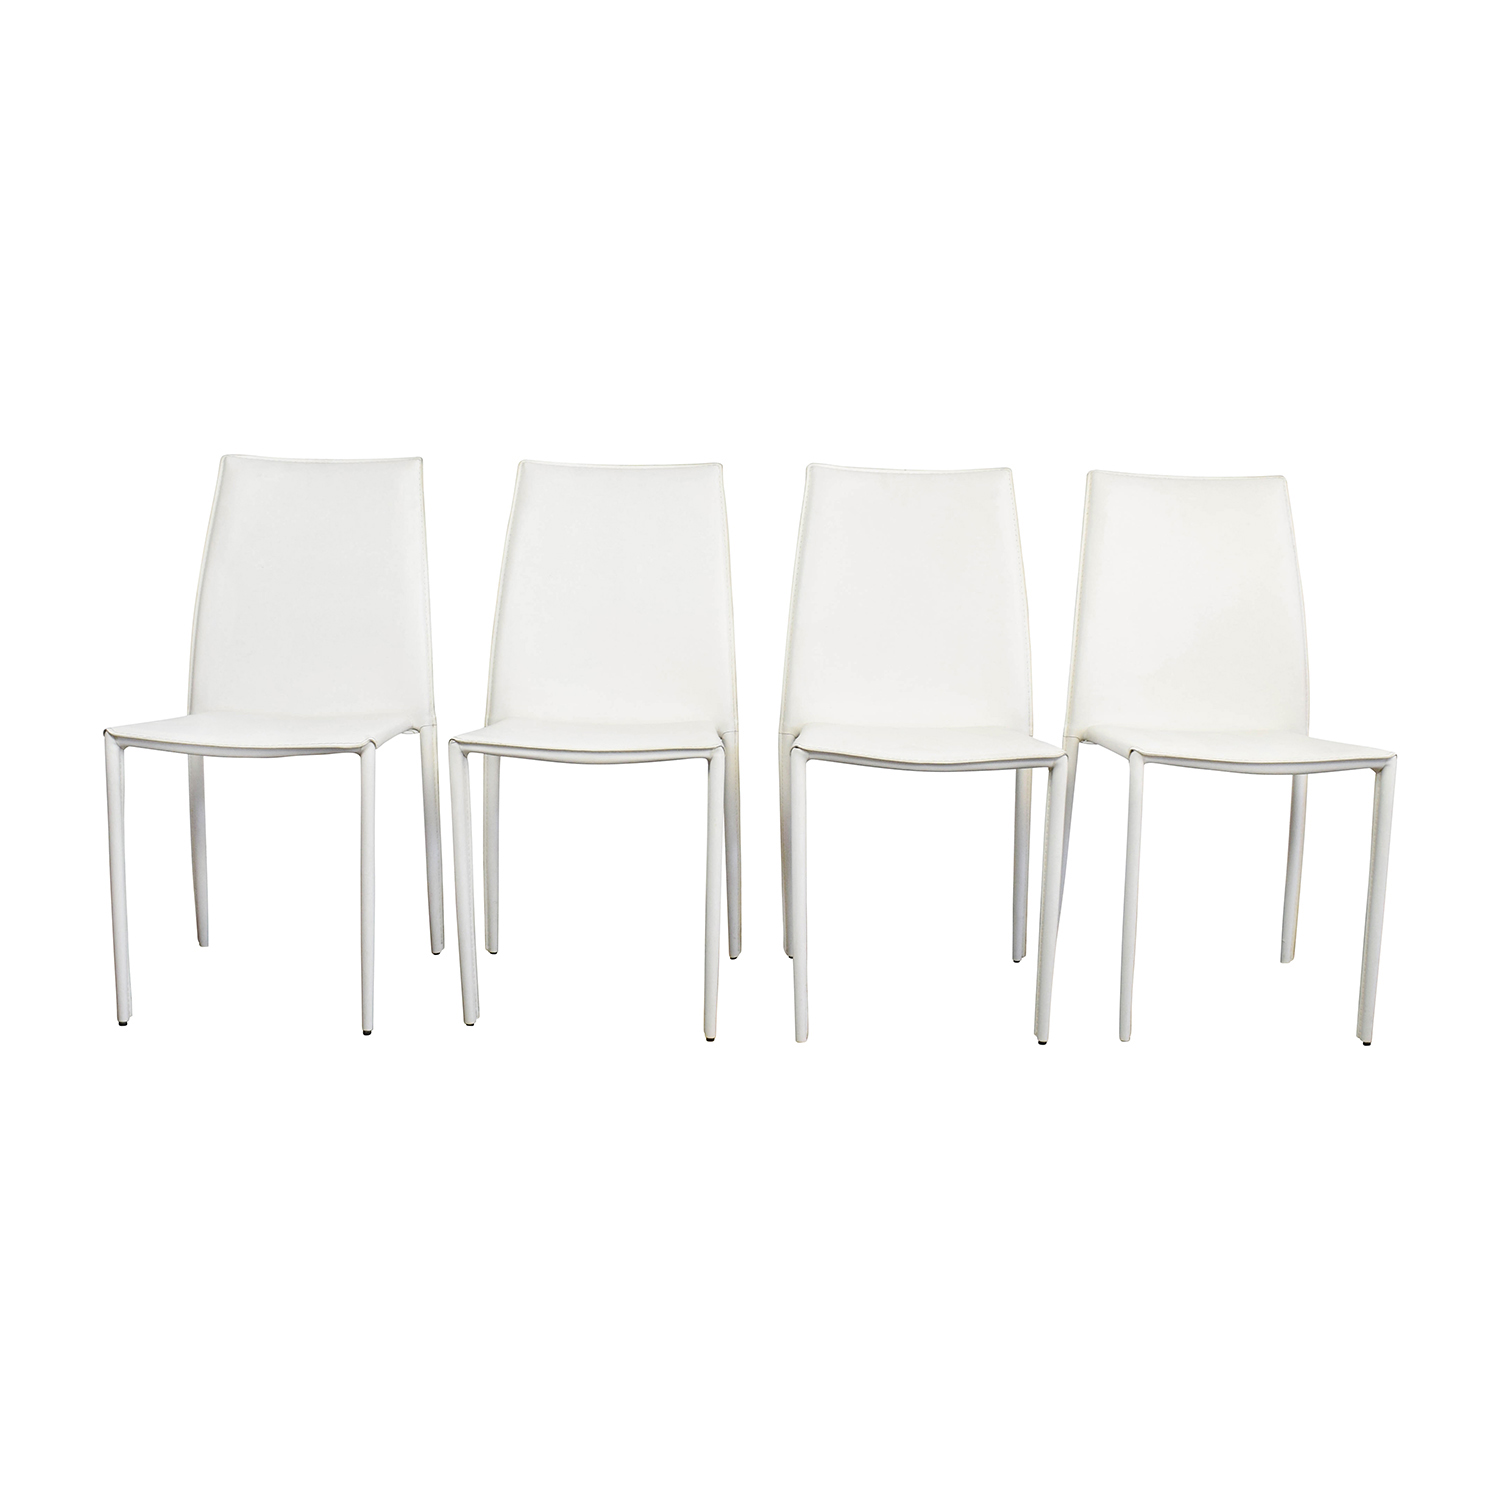 I Buy All Modern White Leather Dining Chairs